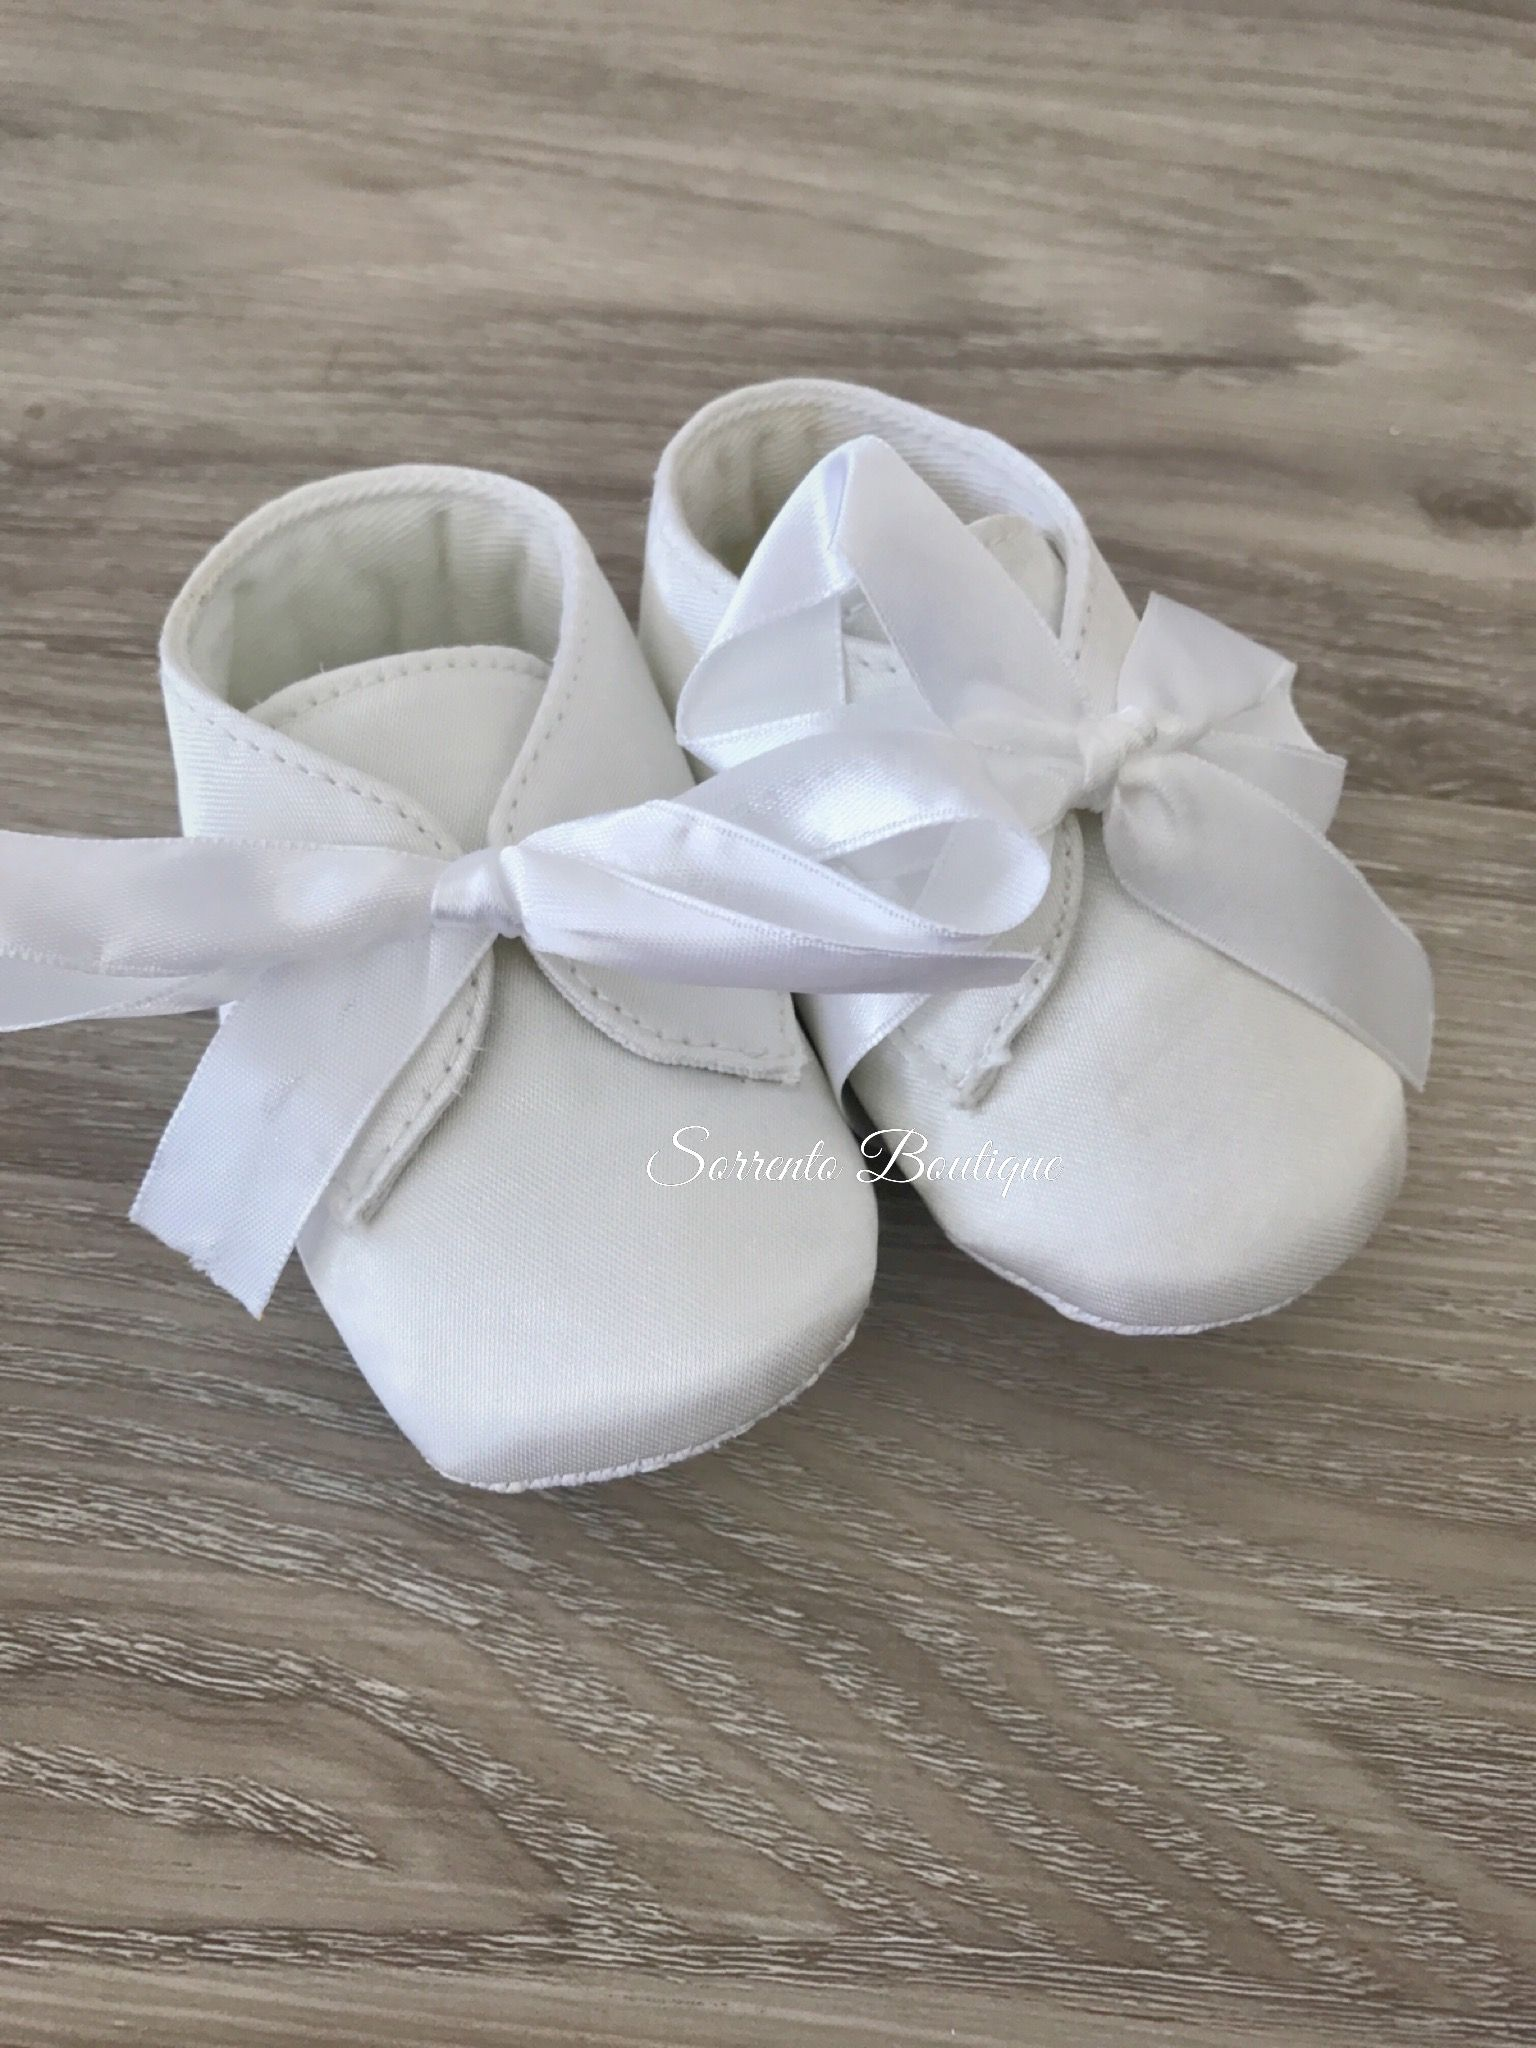 Baby boy satin boots are available in white or ivory